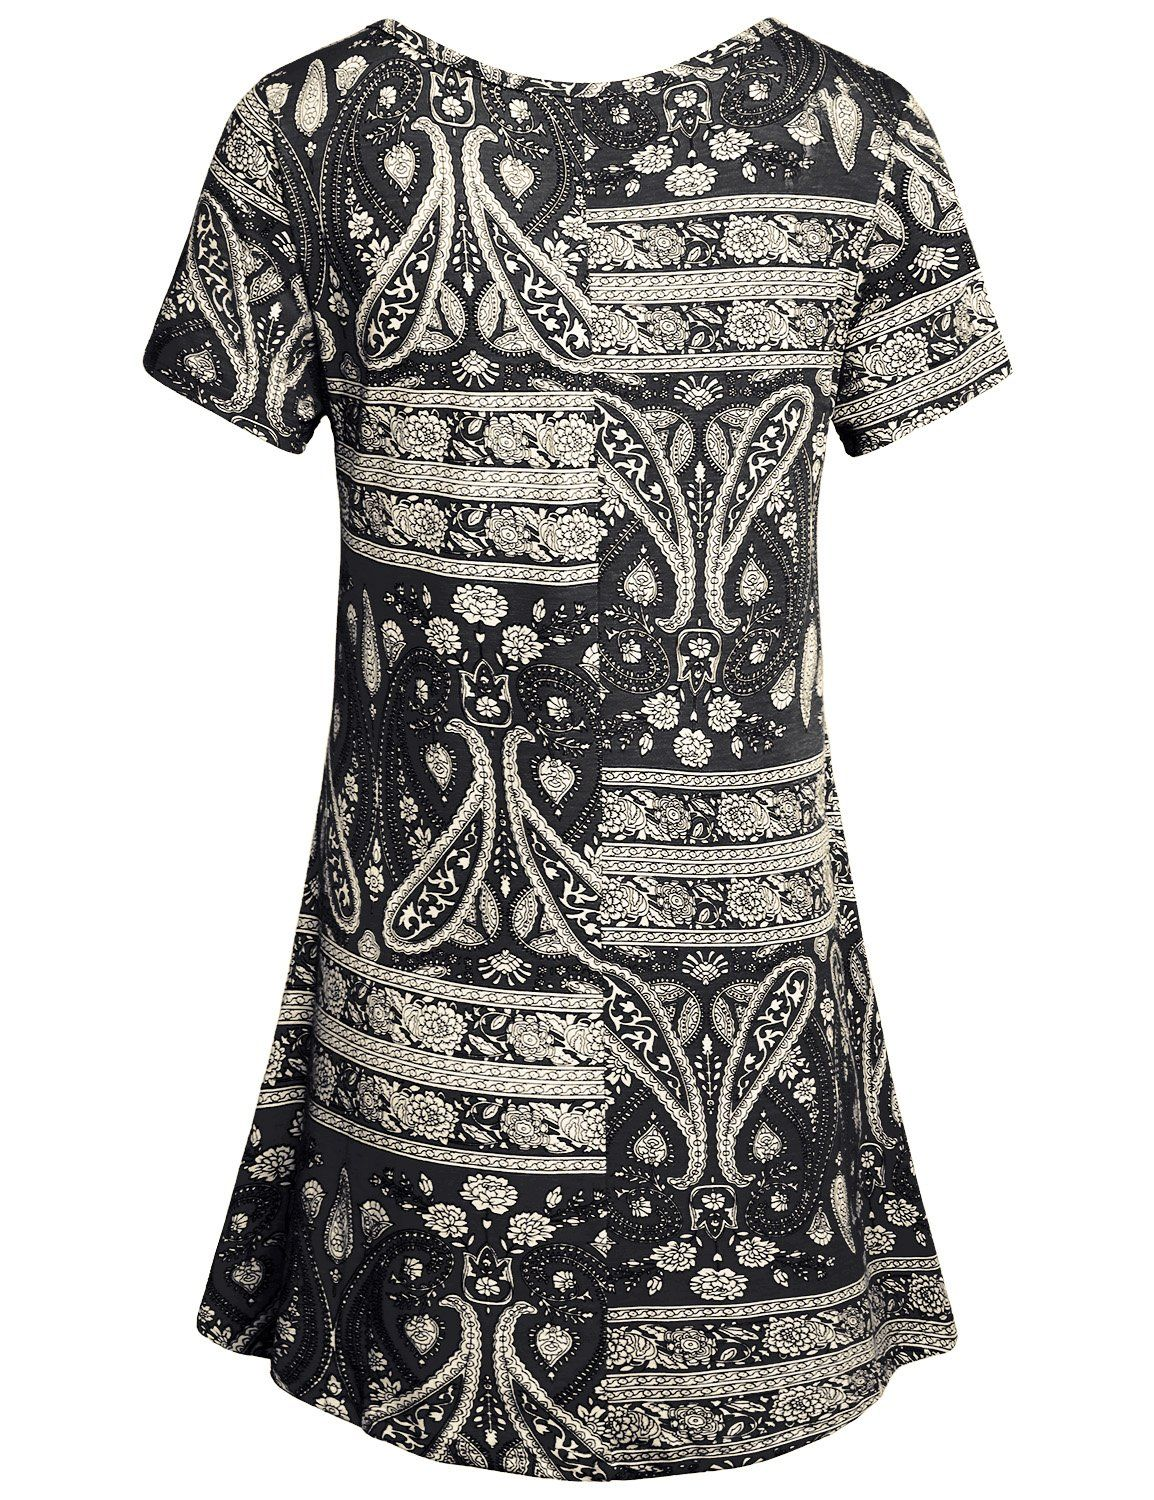 eb9f50a43e1d22 Hibelle Floral Blouses Womens Peasant Clothing Short Sleeve Crew Neck Shirt  Vintage Retro Style Ladies Knitted Print Tunic Tee Polyester Tops For  Legging ...